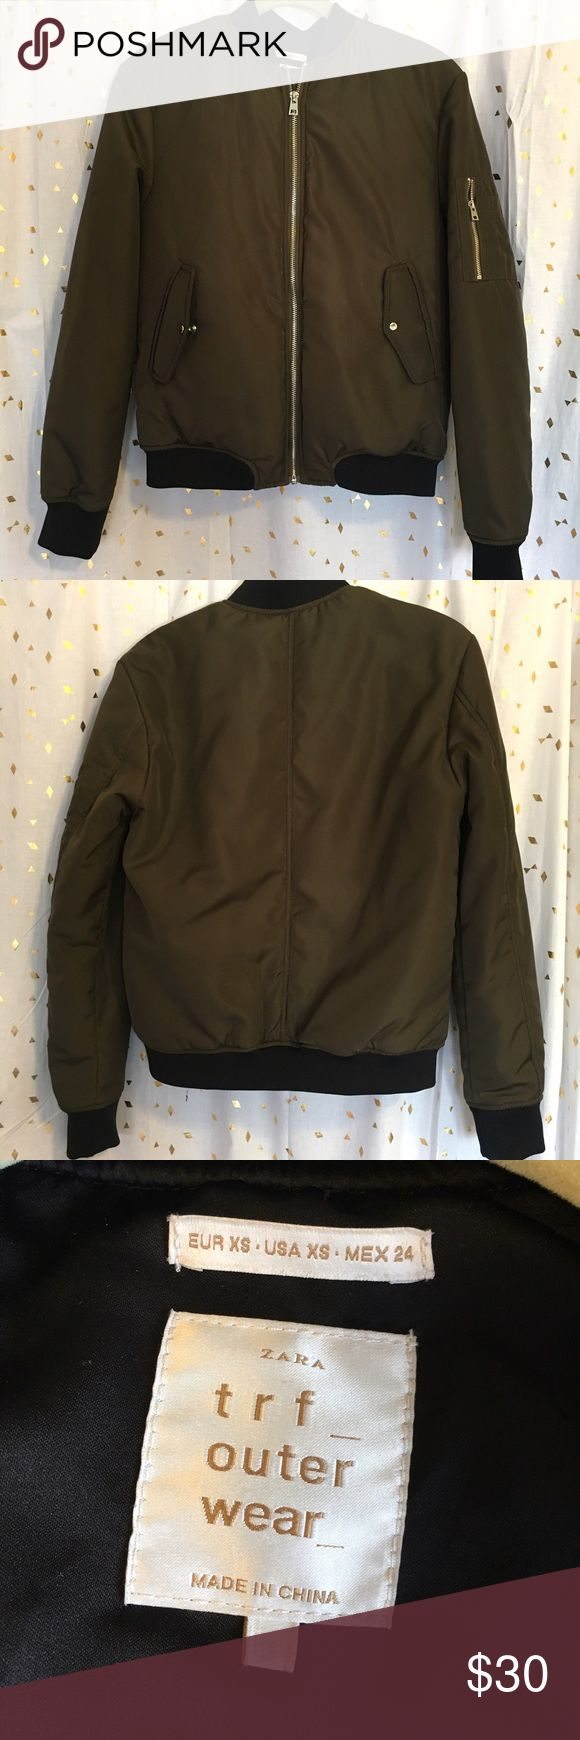 📦MOVING SALE📦 Zara bomber jacket Green Zara bomber jacket. A few minor spots but due to the nature of this fabric they're hard to see. Only worn a few times and in overall good condition. Cute jacket just a little big on me! Zara Jackets & Coats